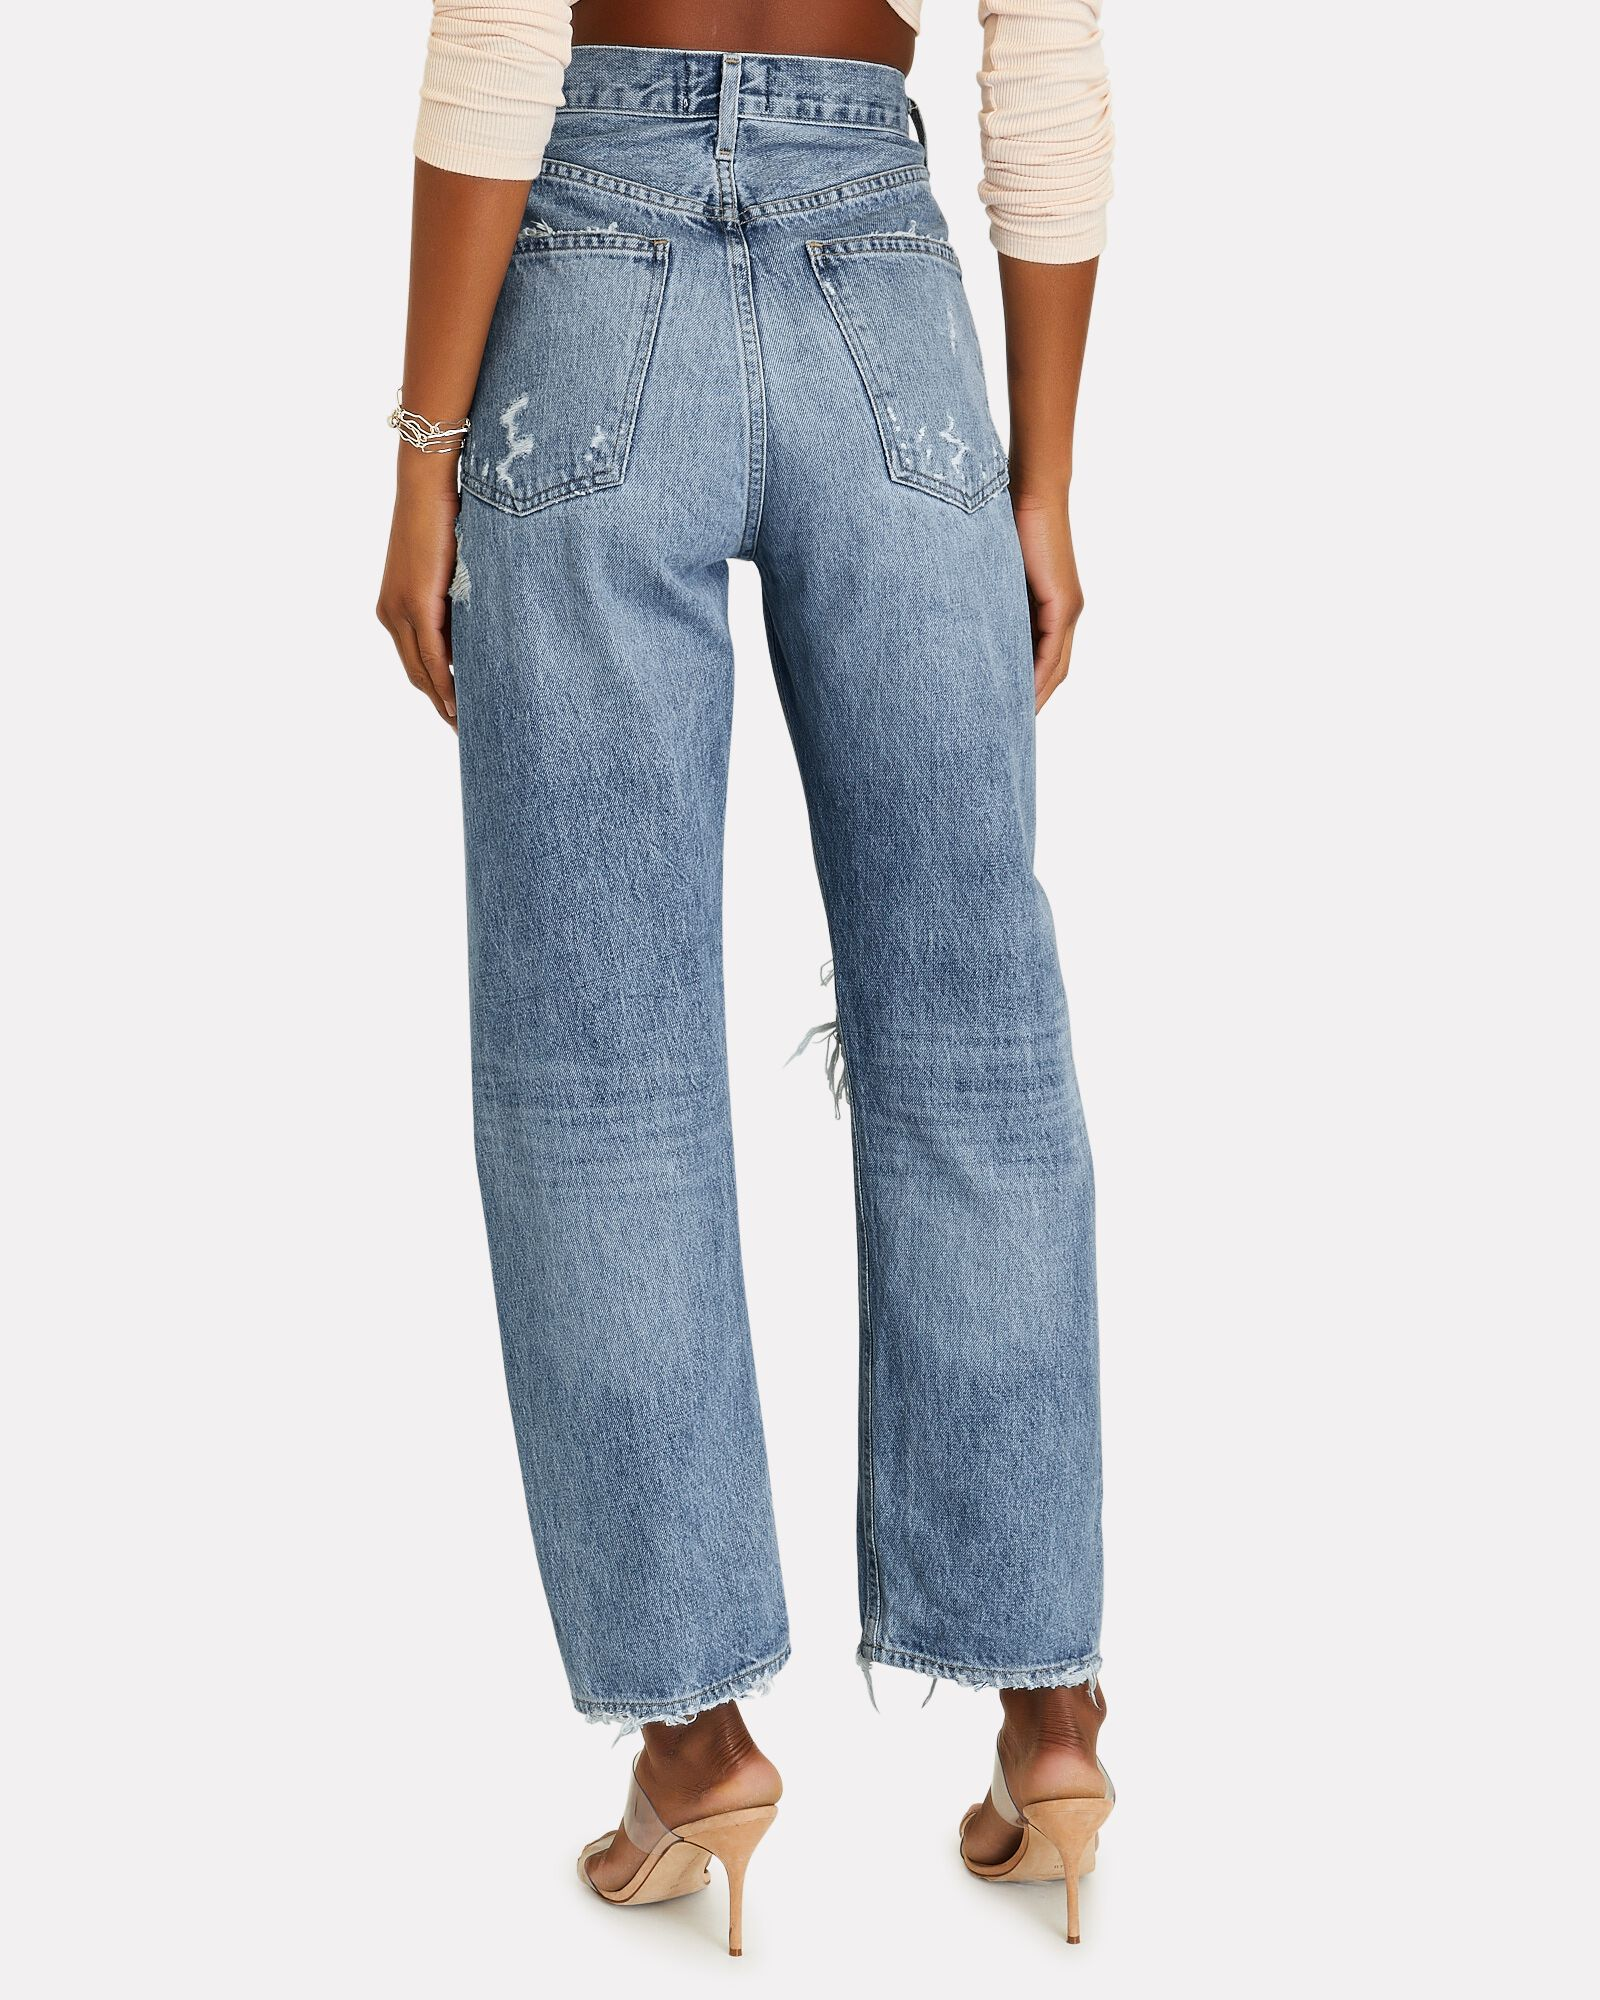 90s Distressed Straight-Leg Jeans, FALLOUT, hi-res